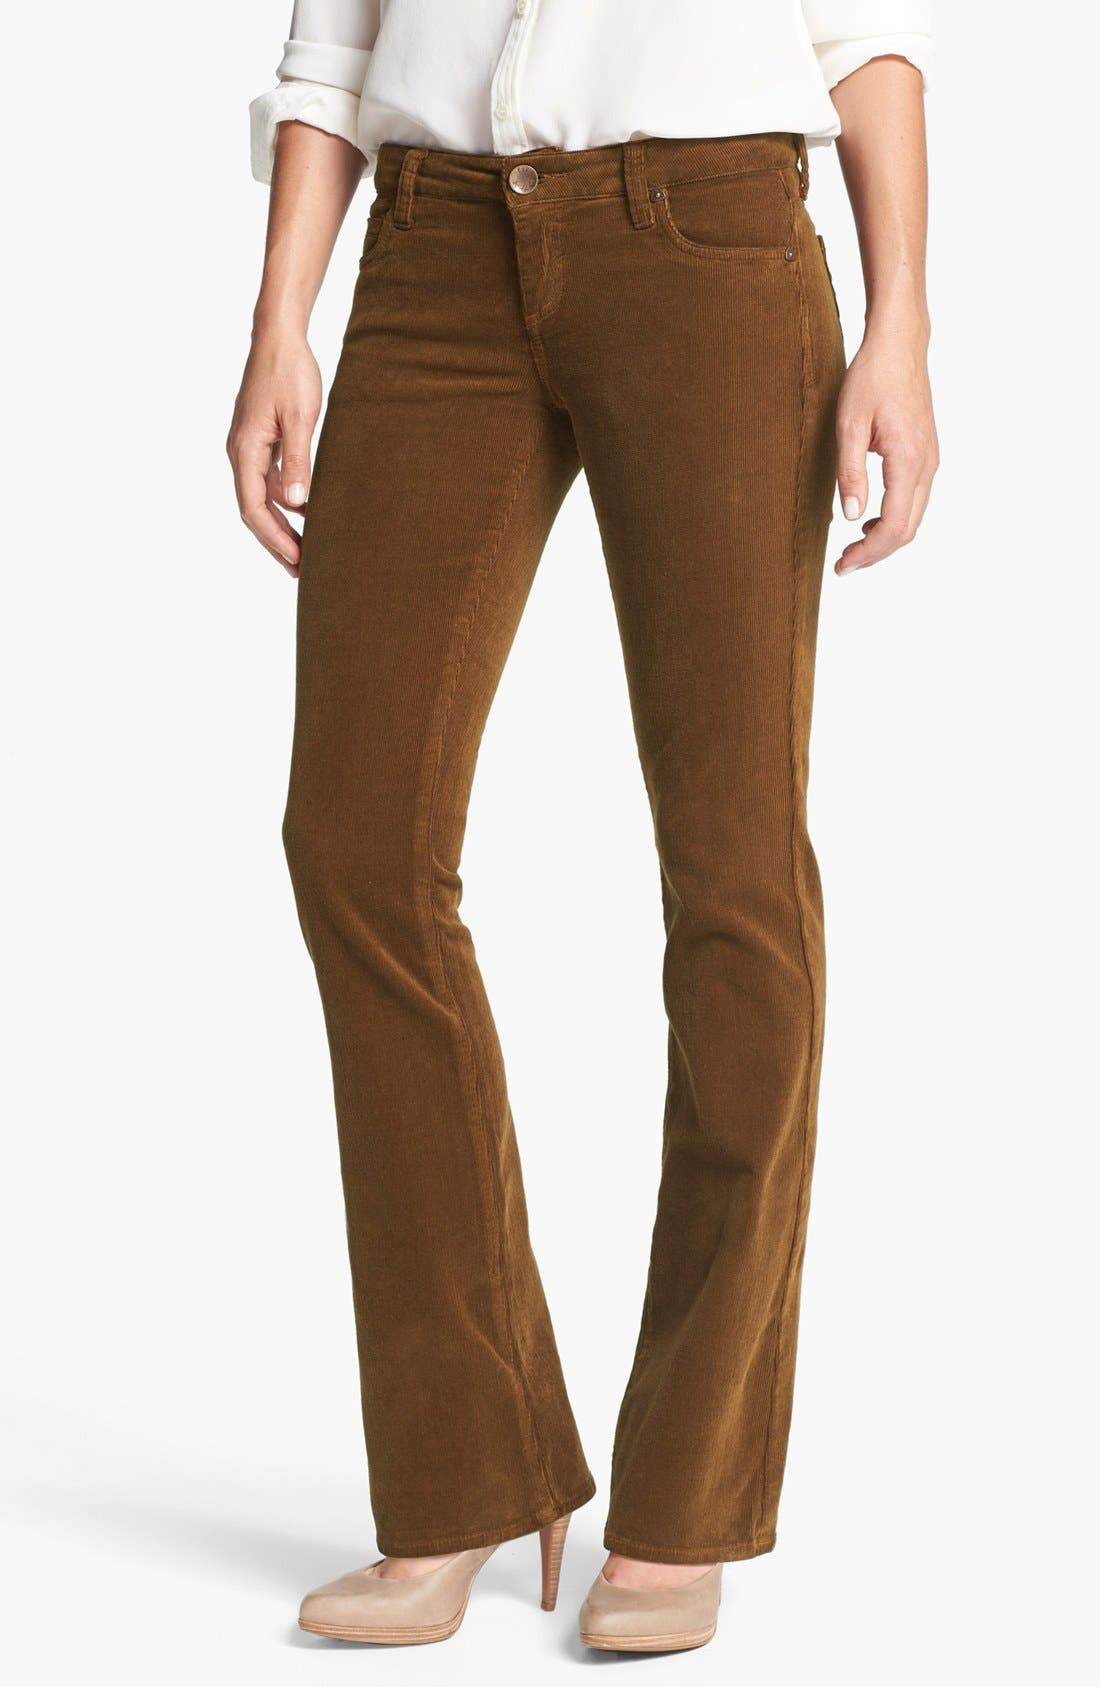 Alternate Image 1 Selected - KUT from the Kloth Baby Bootcut Corduroy Jeans (Regular & Petite)